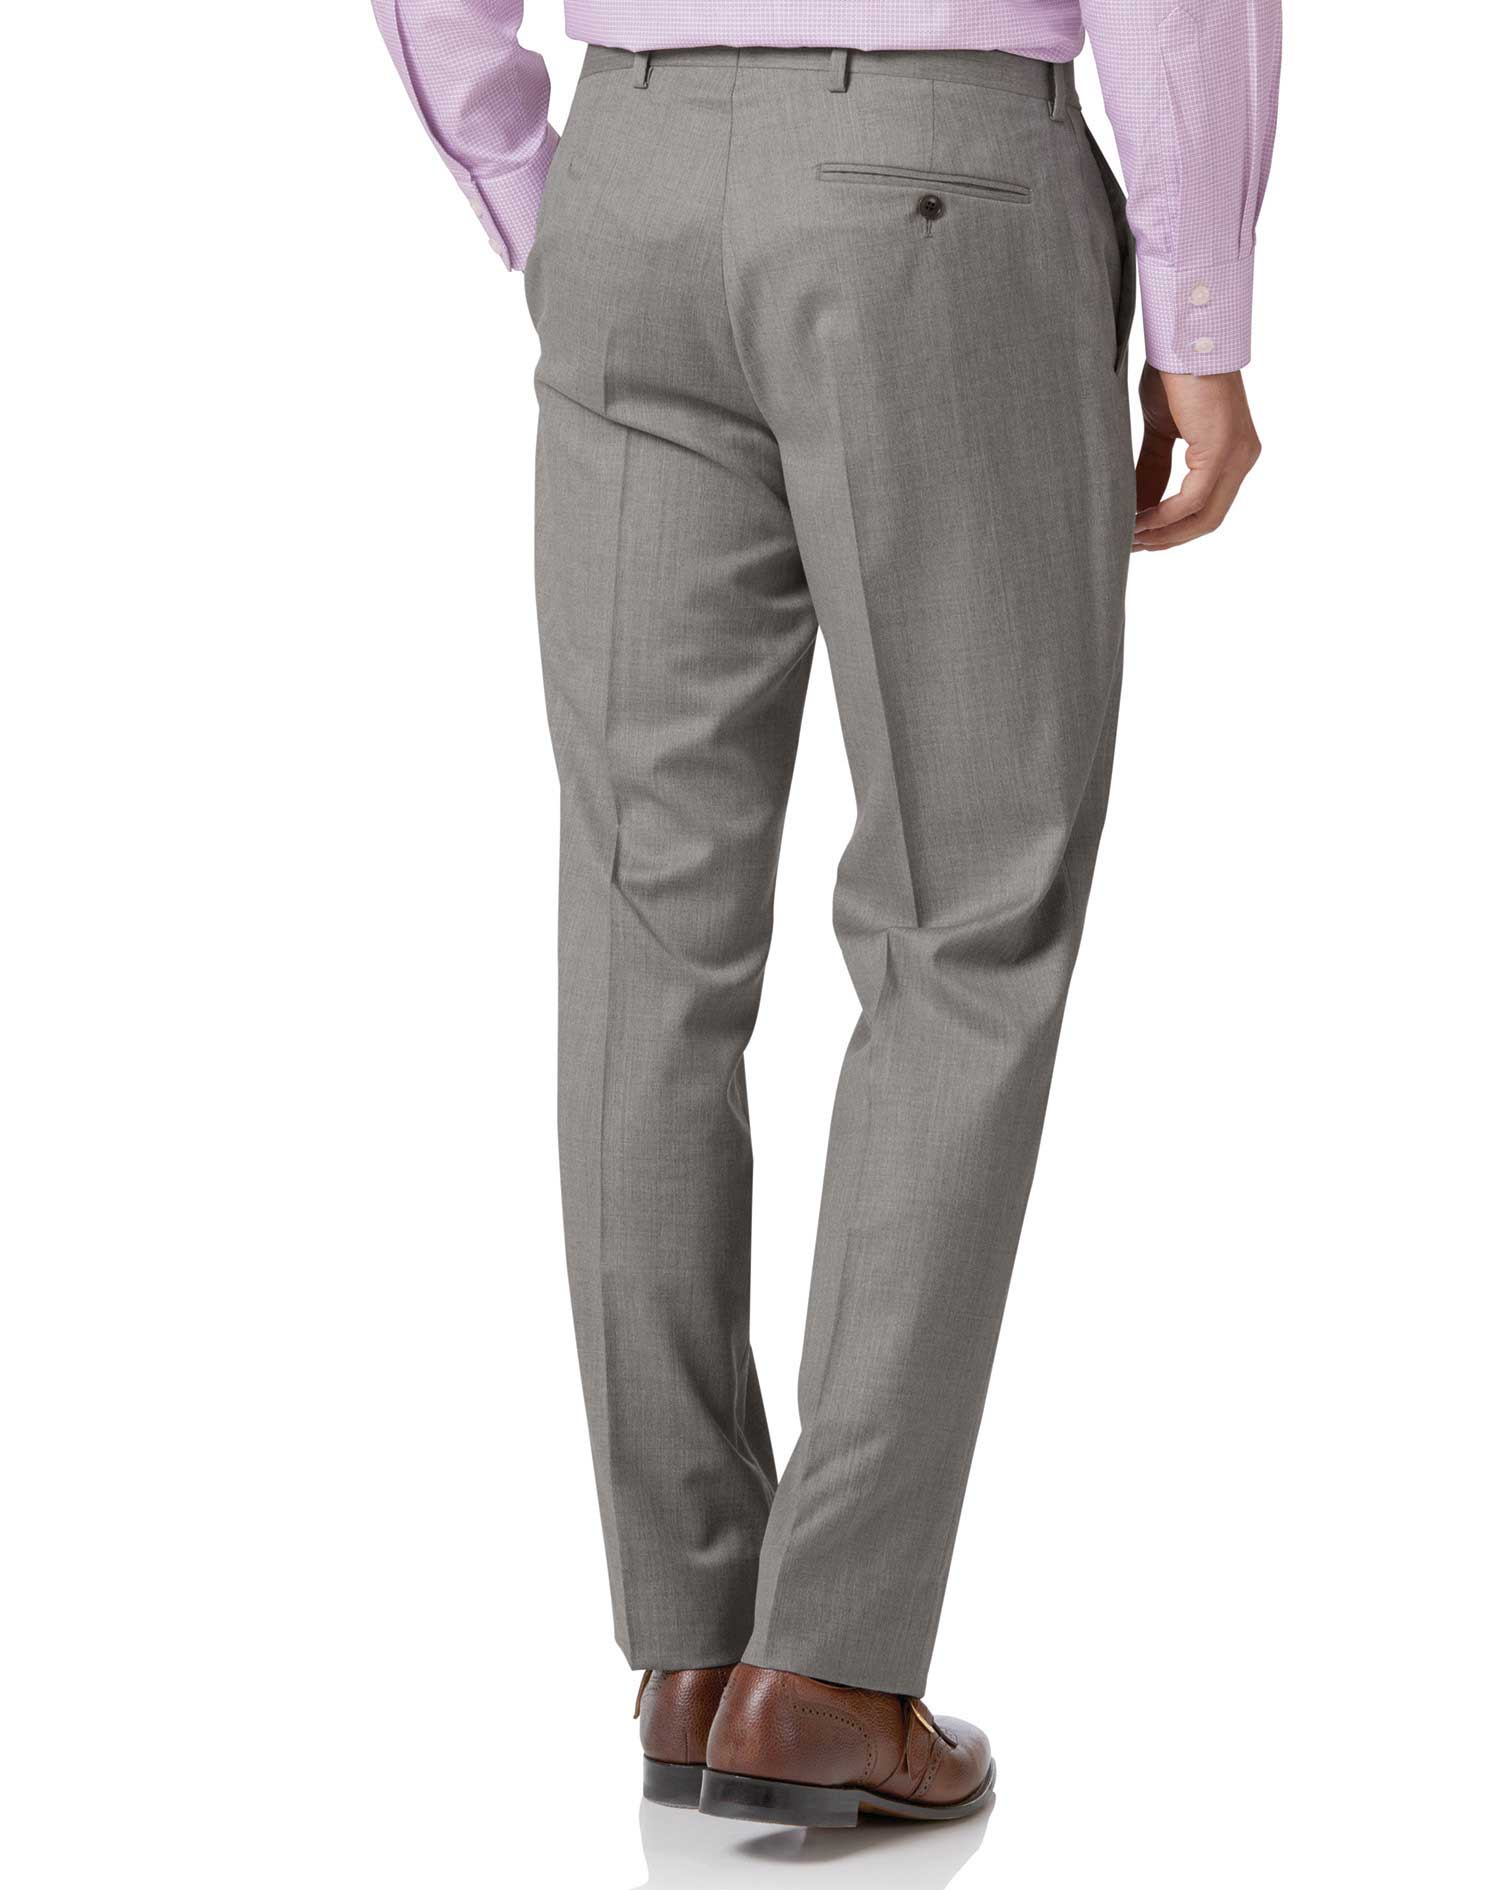 Silver classic fit Italian suit pants